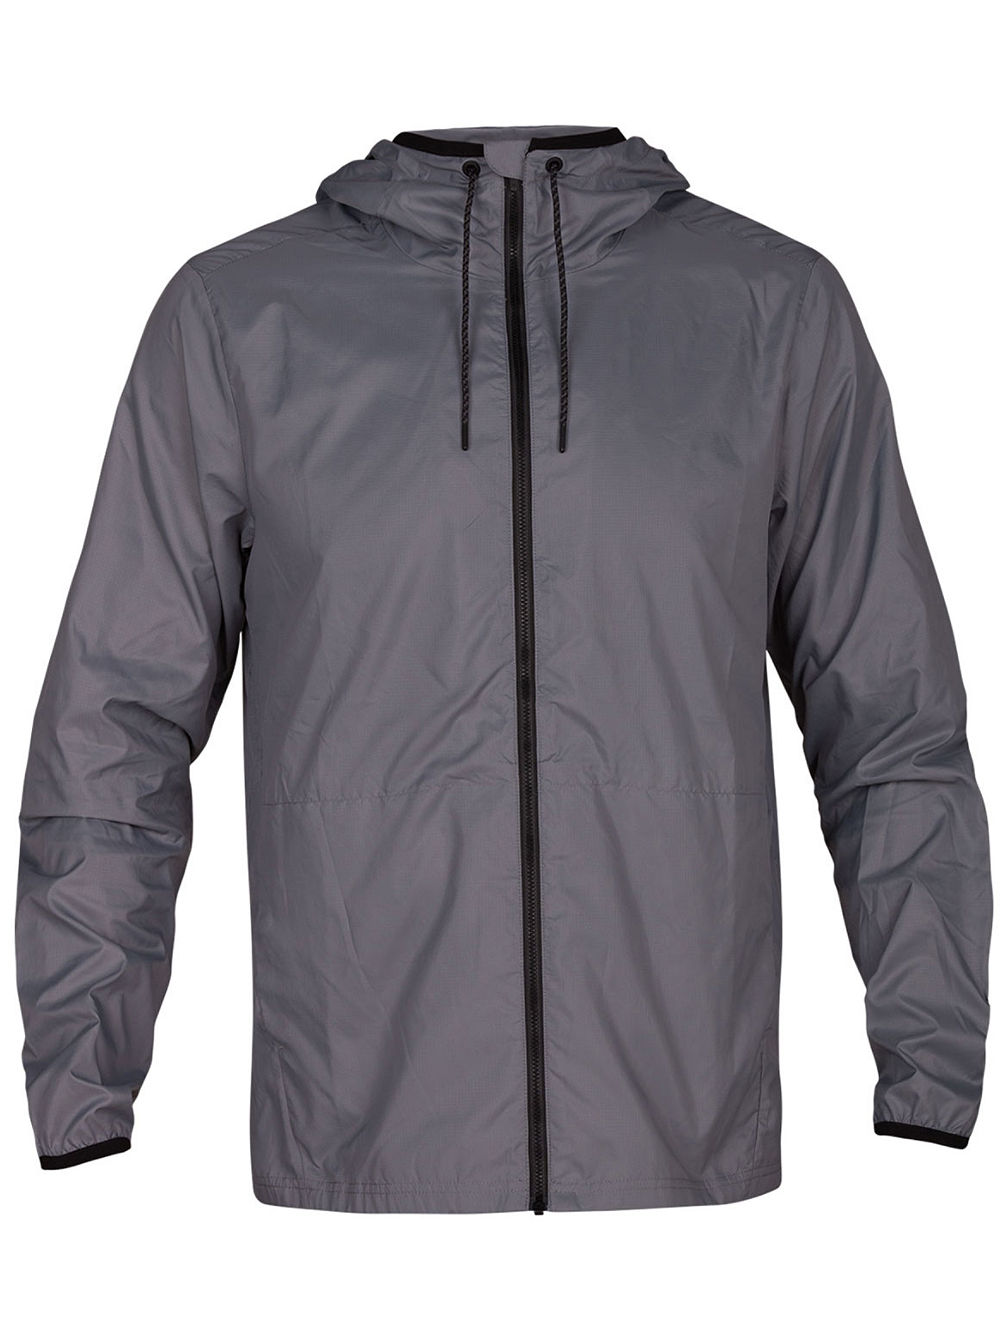 Solid Protect 2.0 Jacket